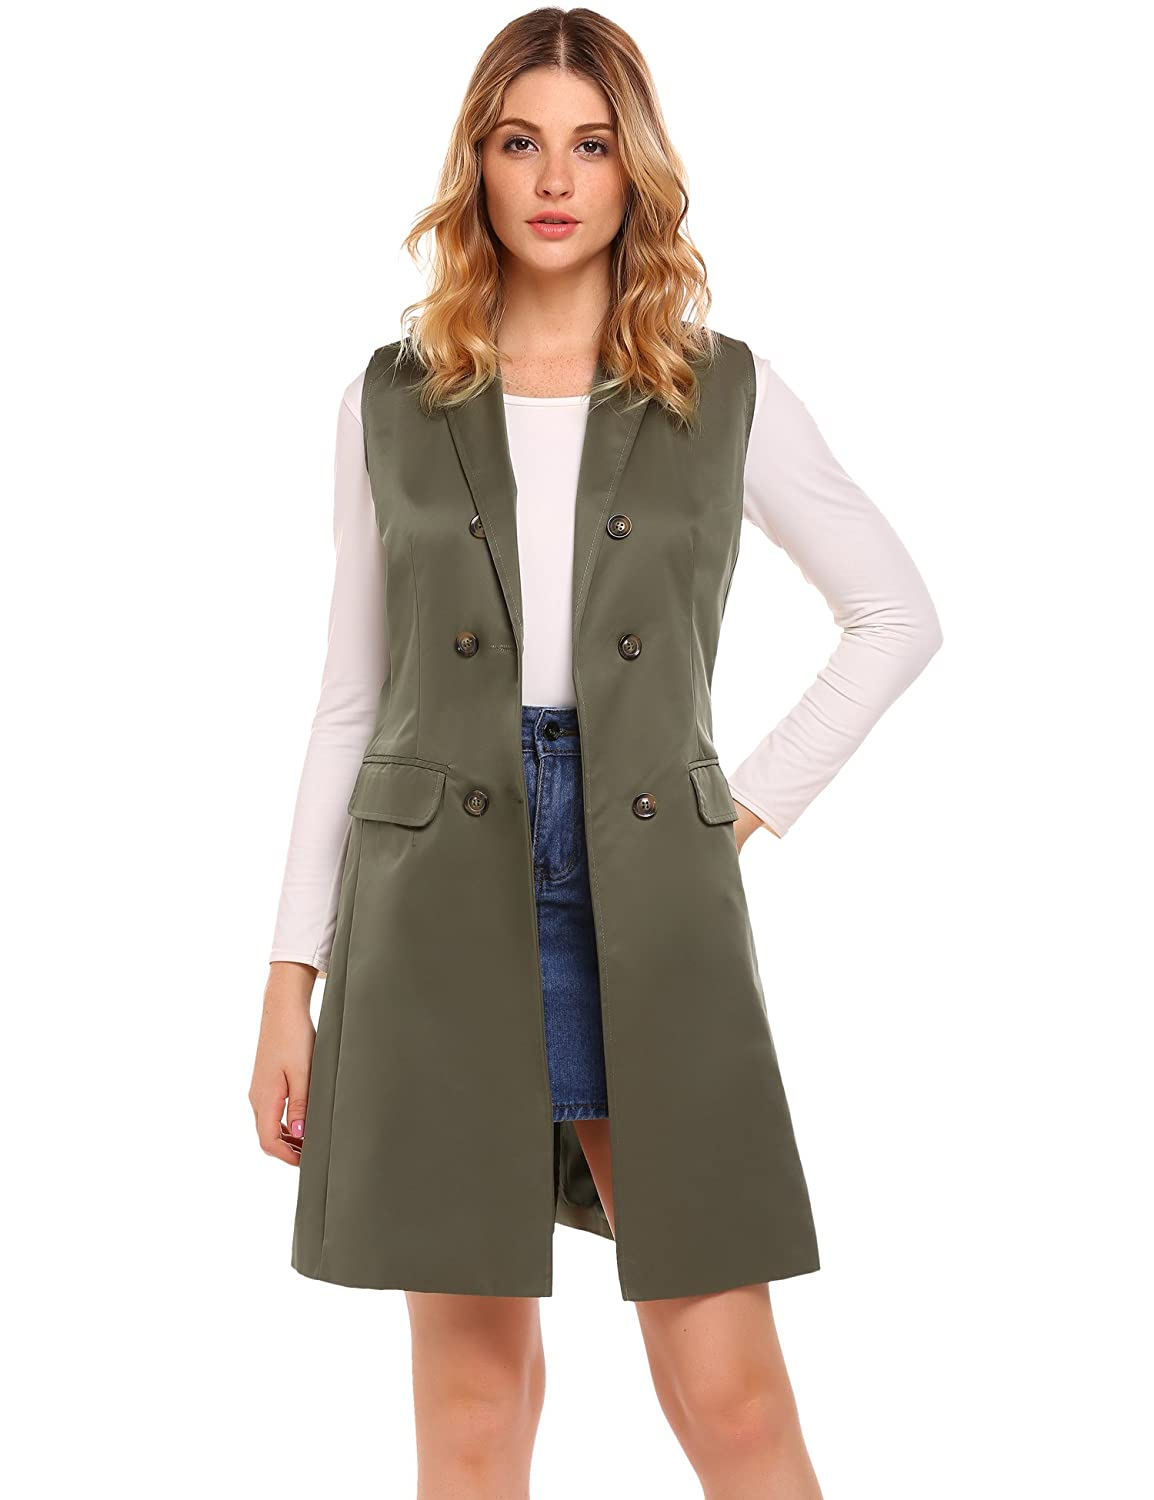 Zeagoo Women's Sleeveless Double-Breasted Long Vest Blazer With 2 Pocket